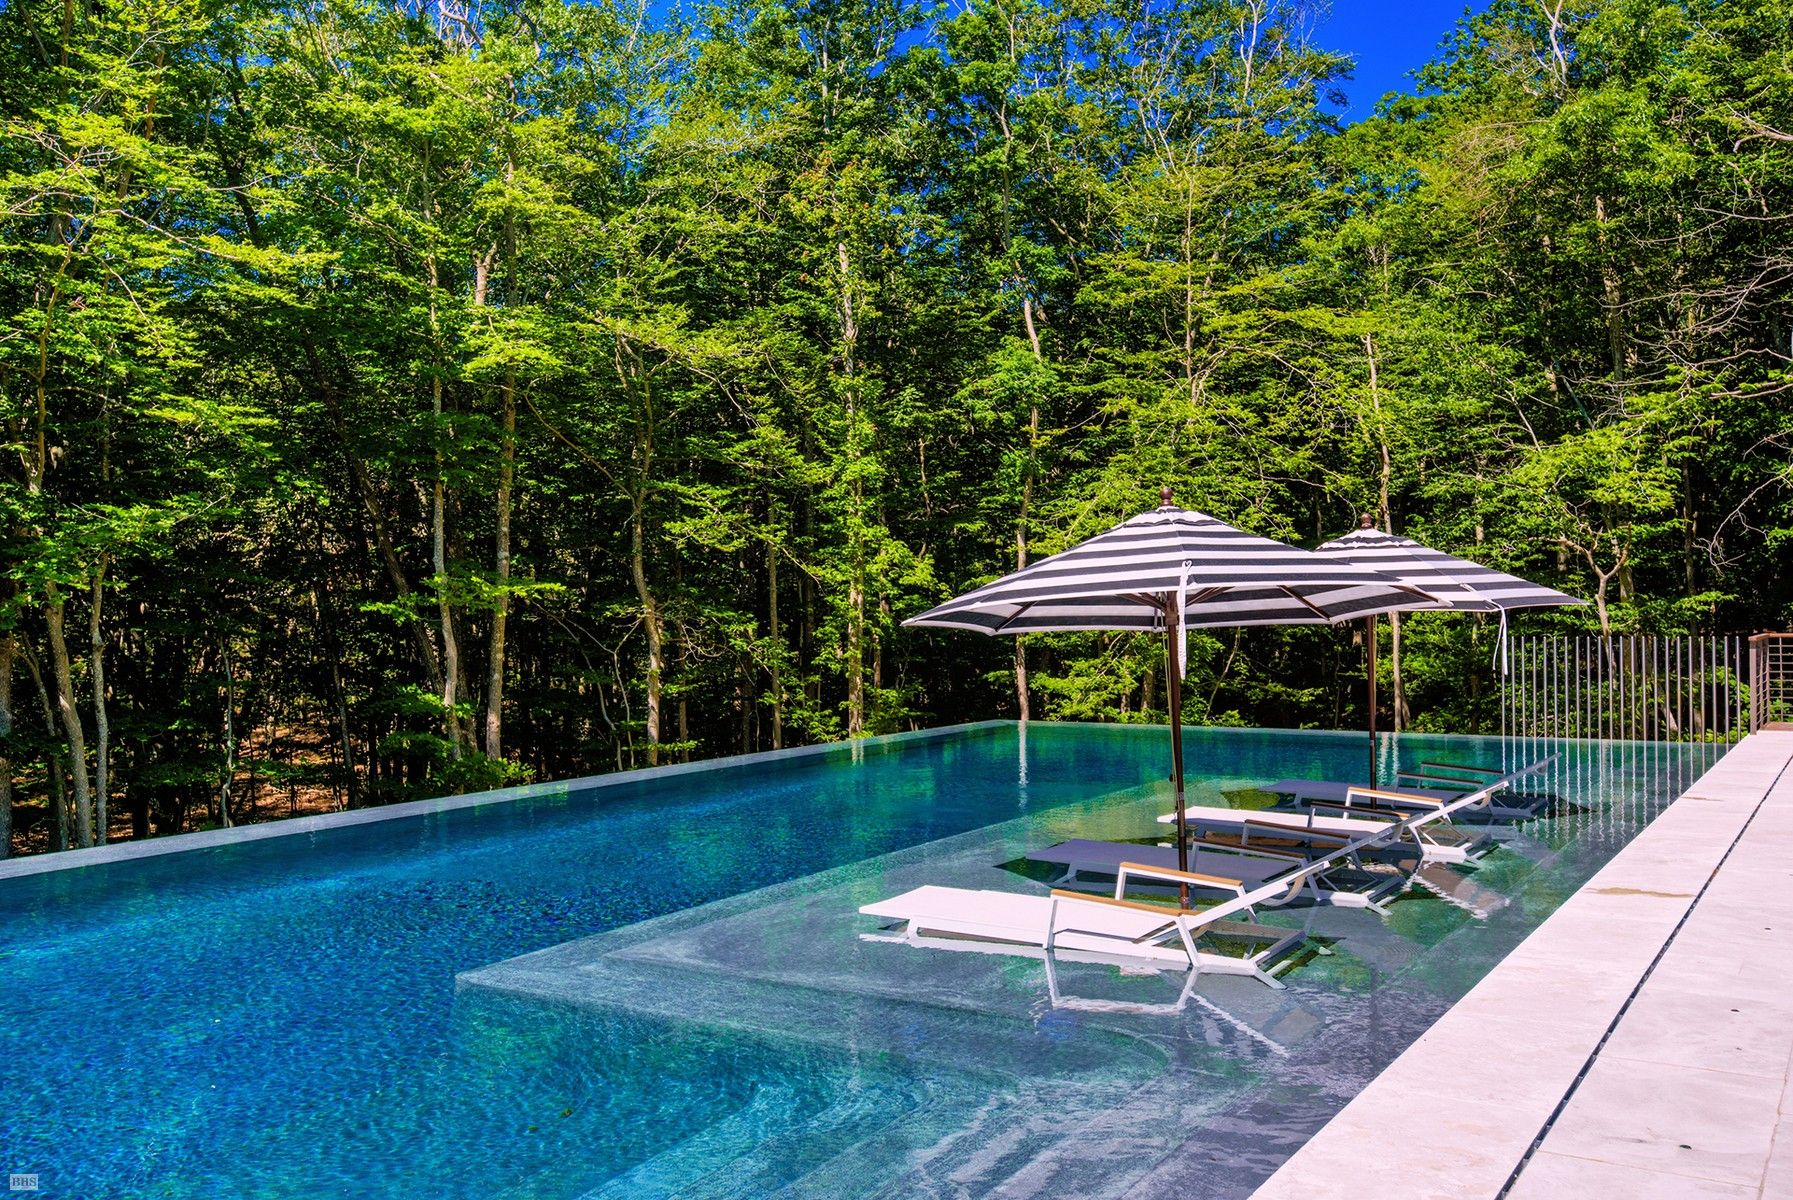 infinity pool (With images) | Modern pools, Ranch style ...